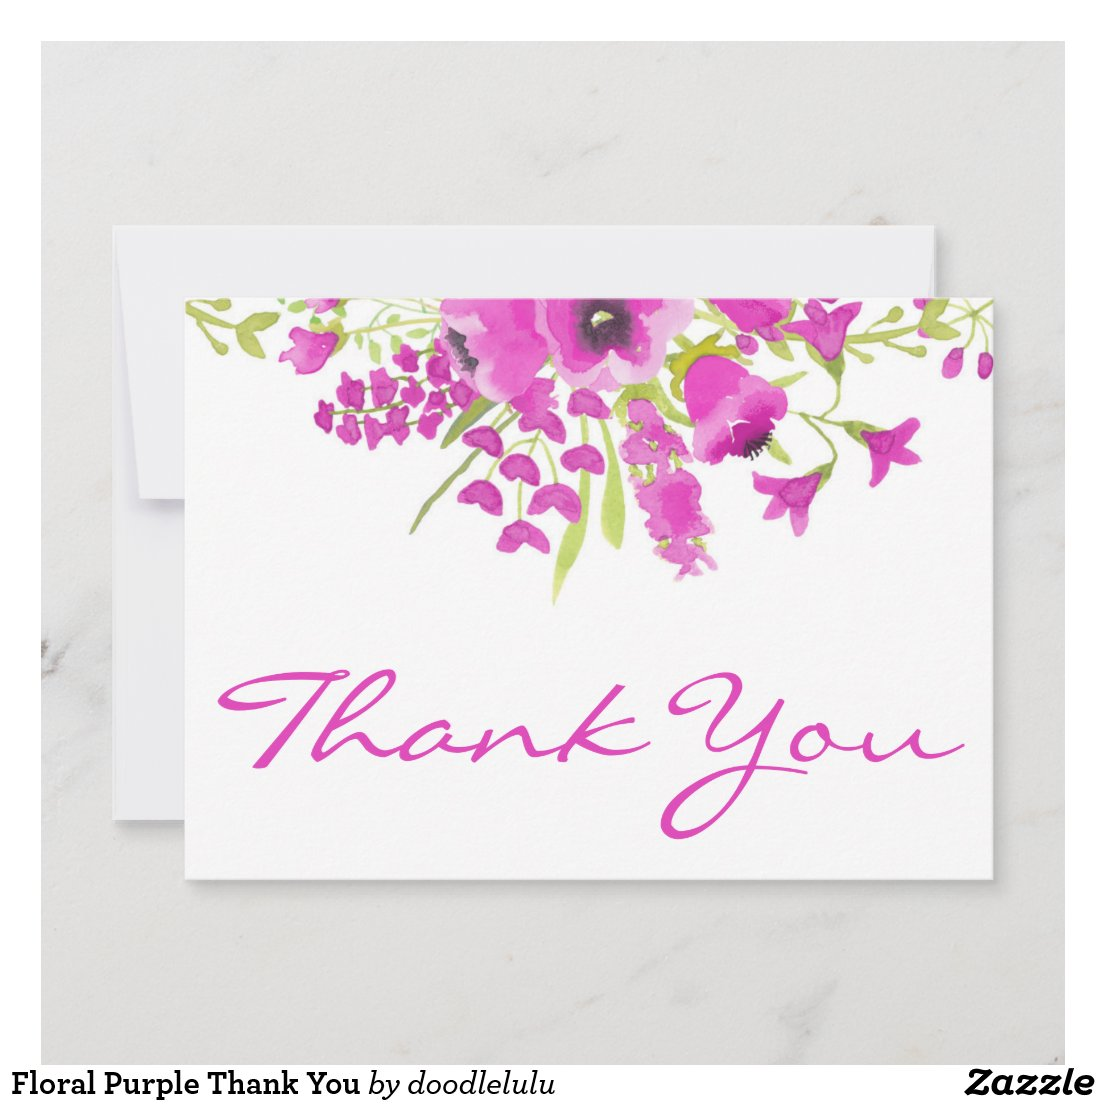 Floral Purple Thank You